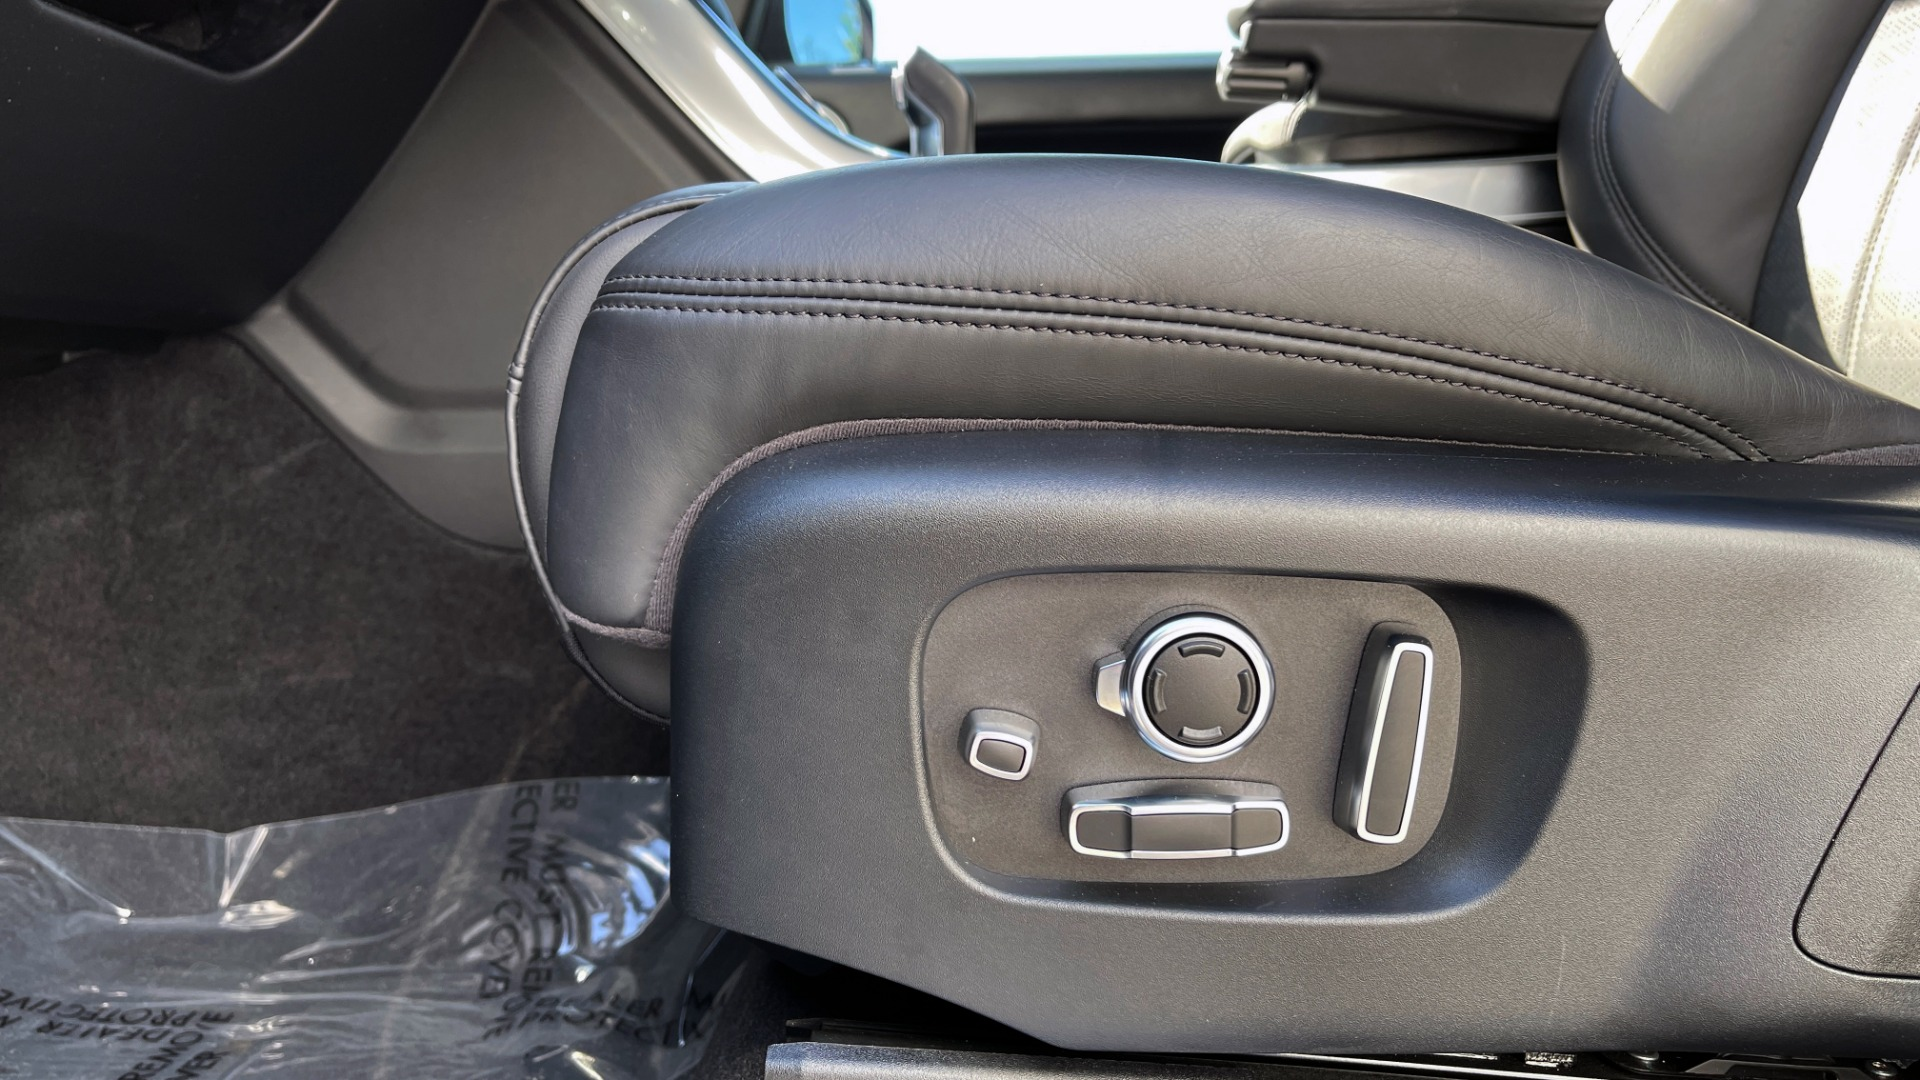 Used 2019 Land Rover RANGE ROVER SPORT HSE DYNAMIC / 3.0L SC V6 / 8-SPD / APPLE / NAV / SUNROOF / REARVIEW for sale Sold at Formula Imports in Charlotte NC 28227 35